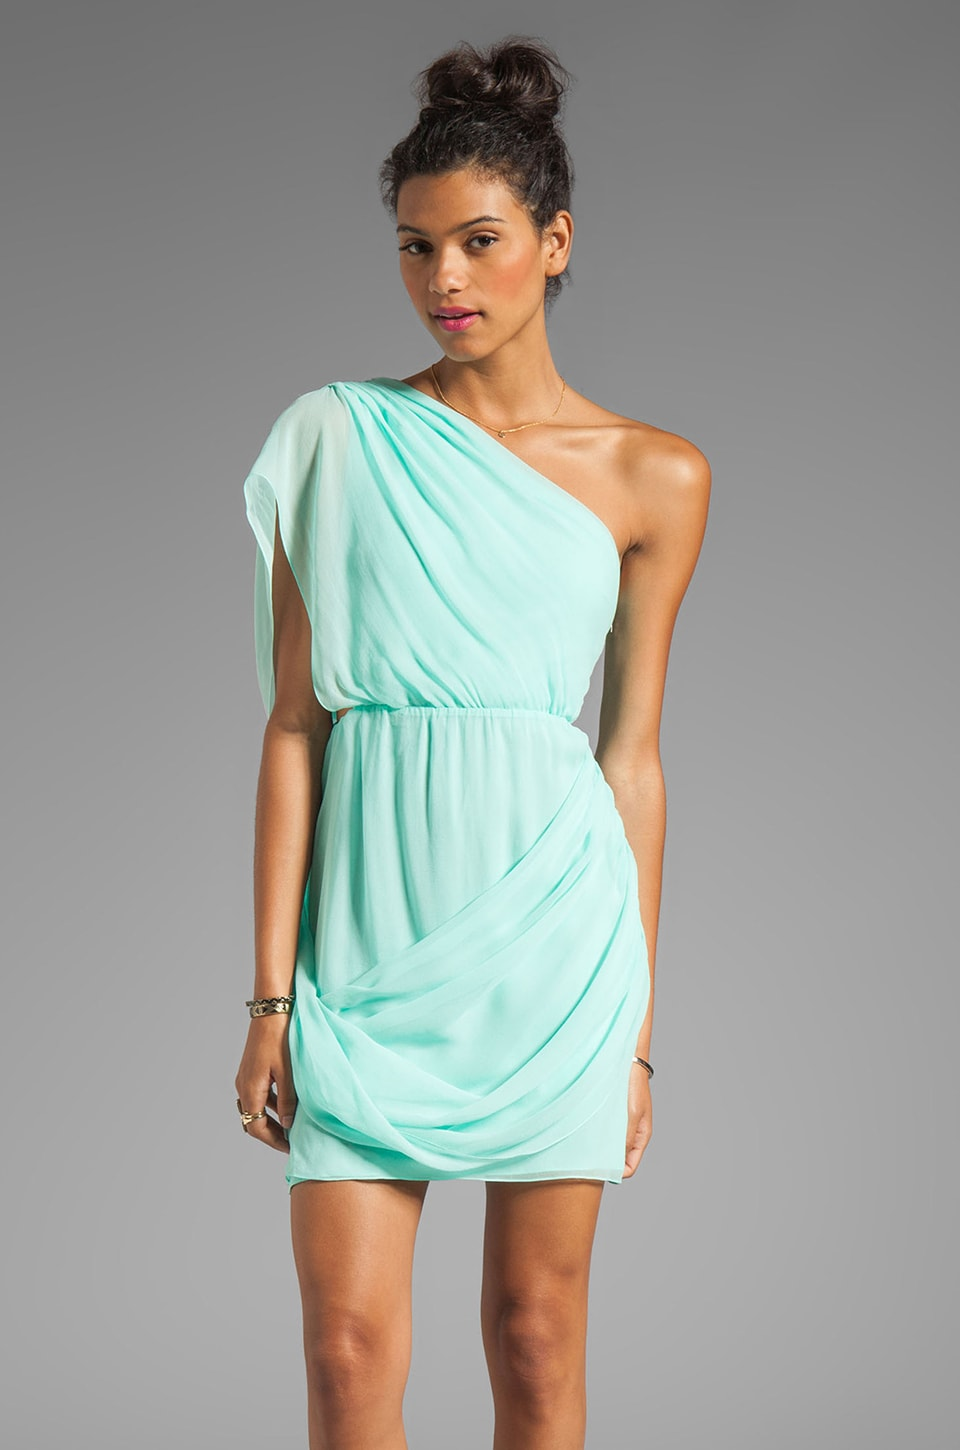 Alice + Olivia Wesson One Shoulder Draped Dress in Aqua Splash